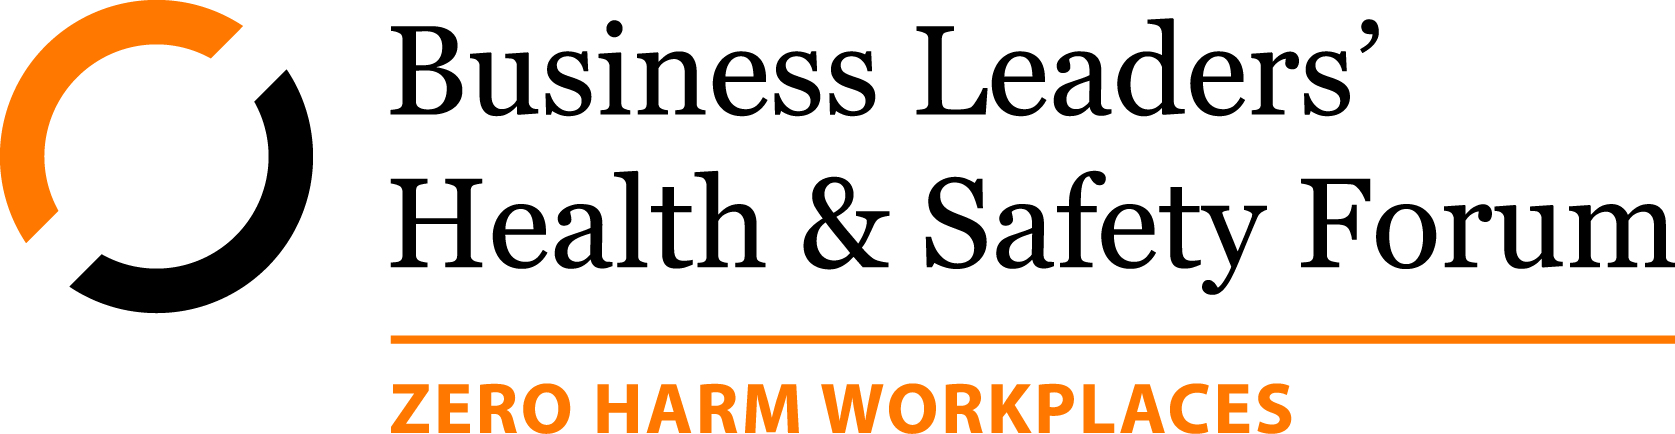 Business Leaders Health & Safety Forum